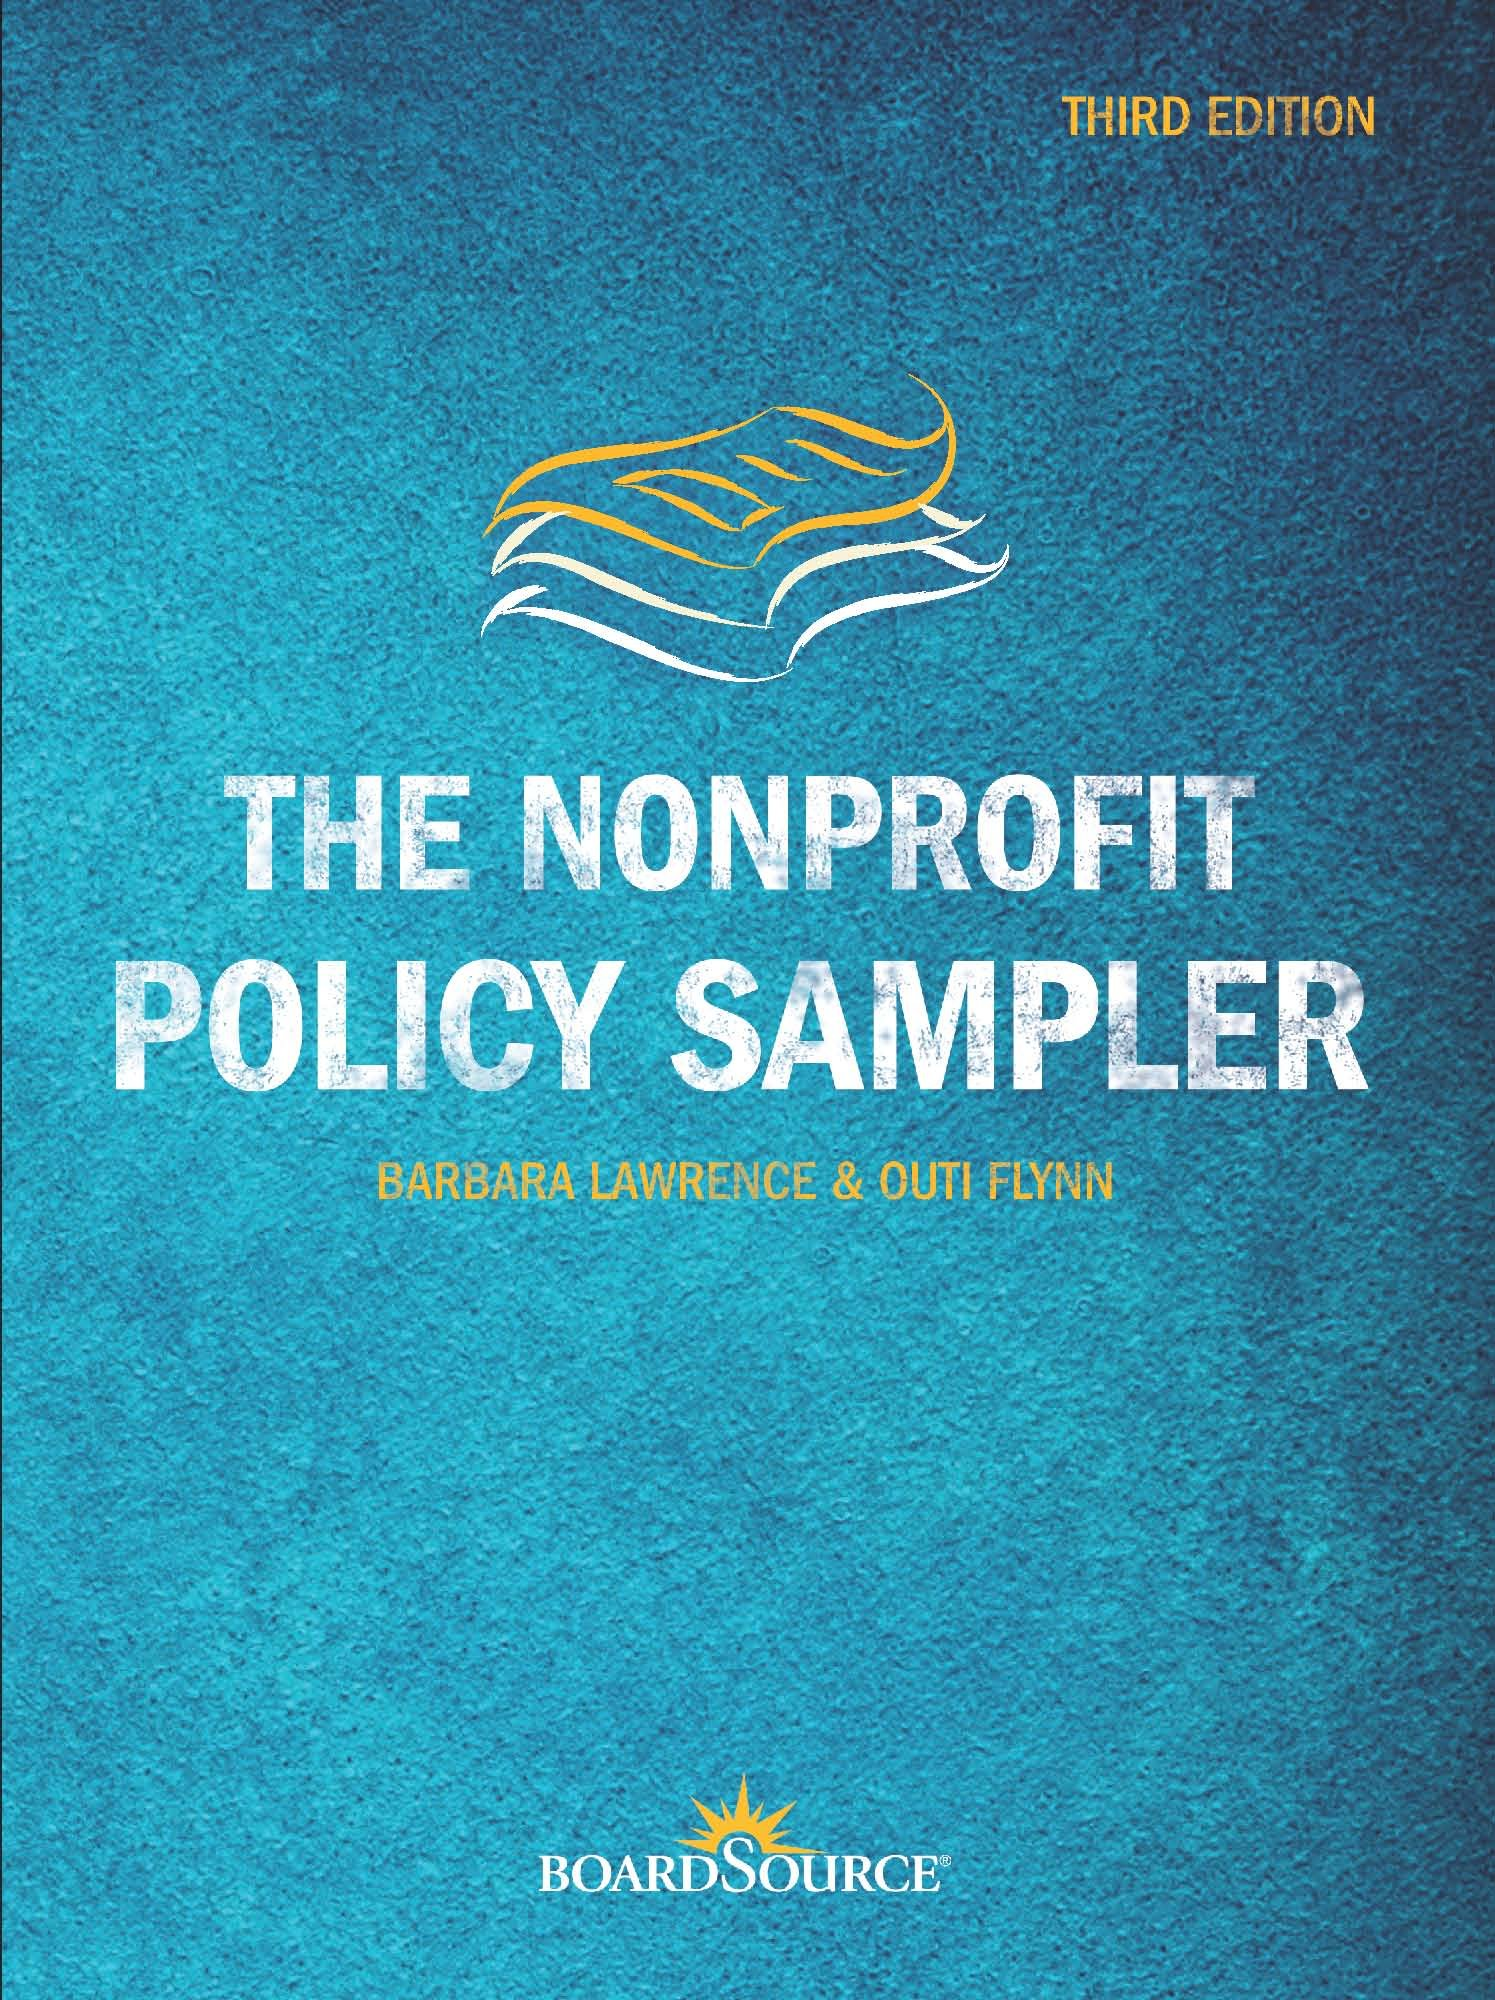 The Nonprofit Policy Sampler, Third Edition ebook